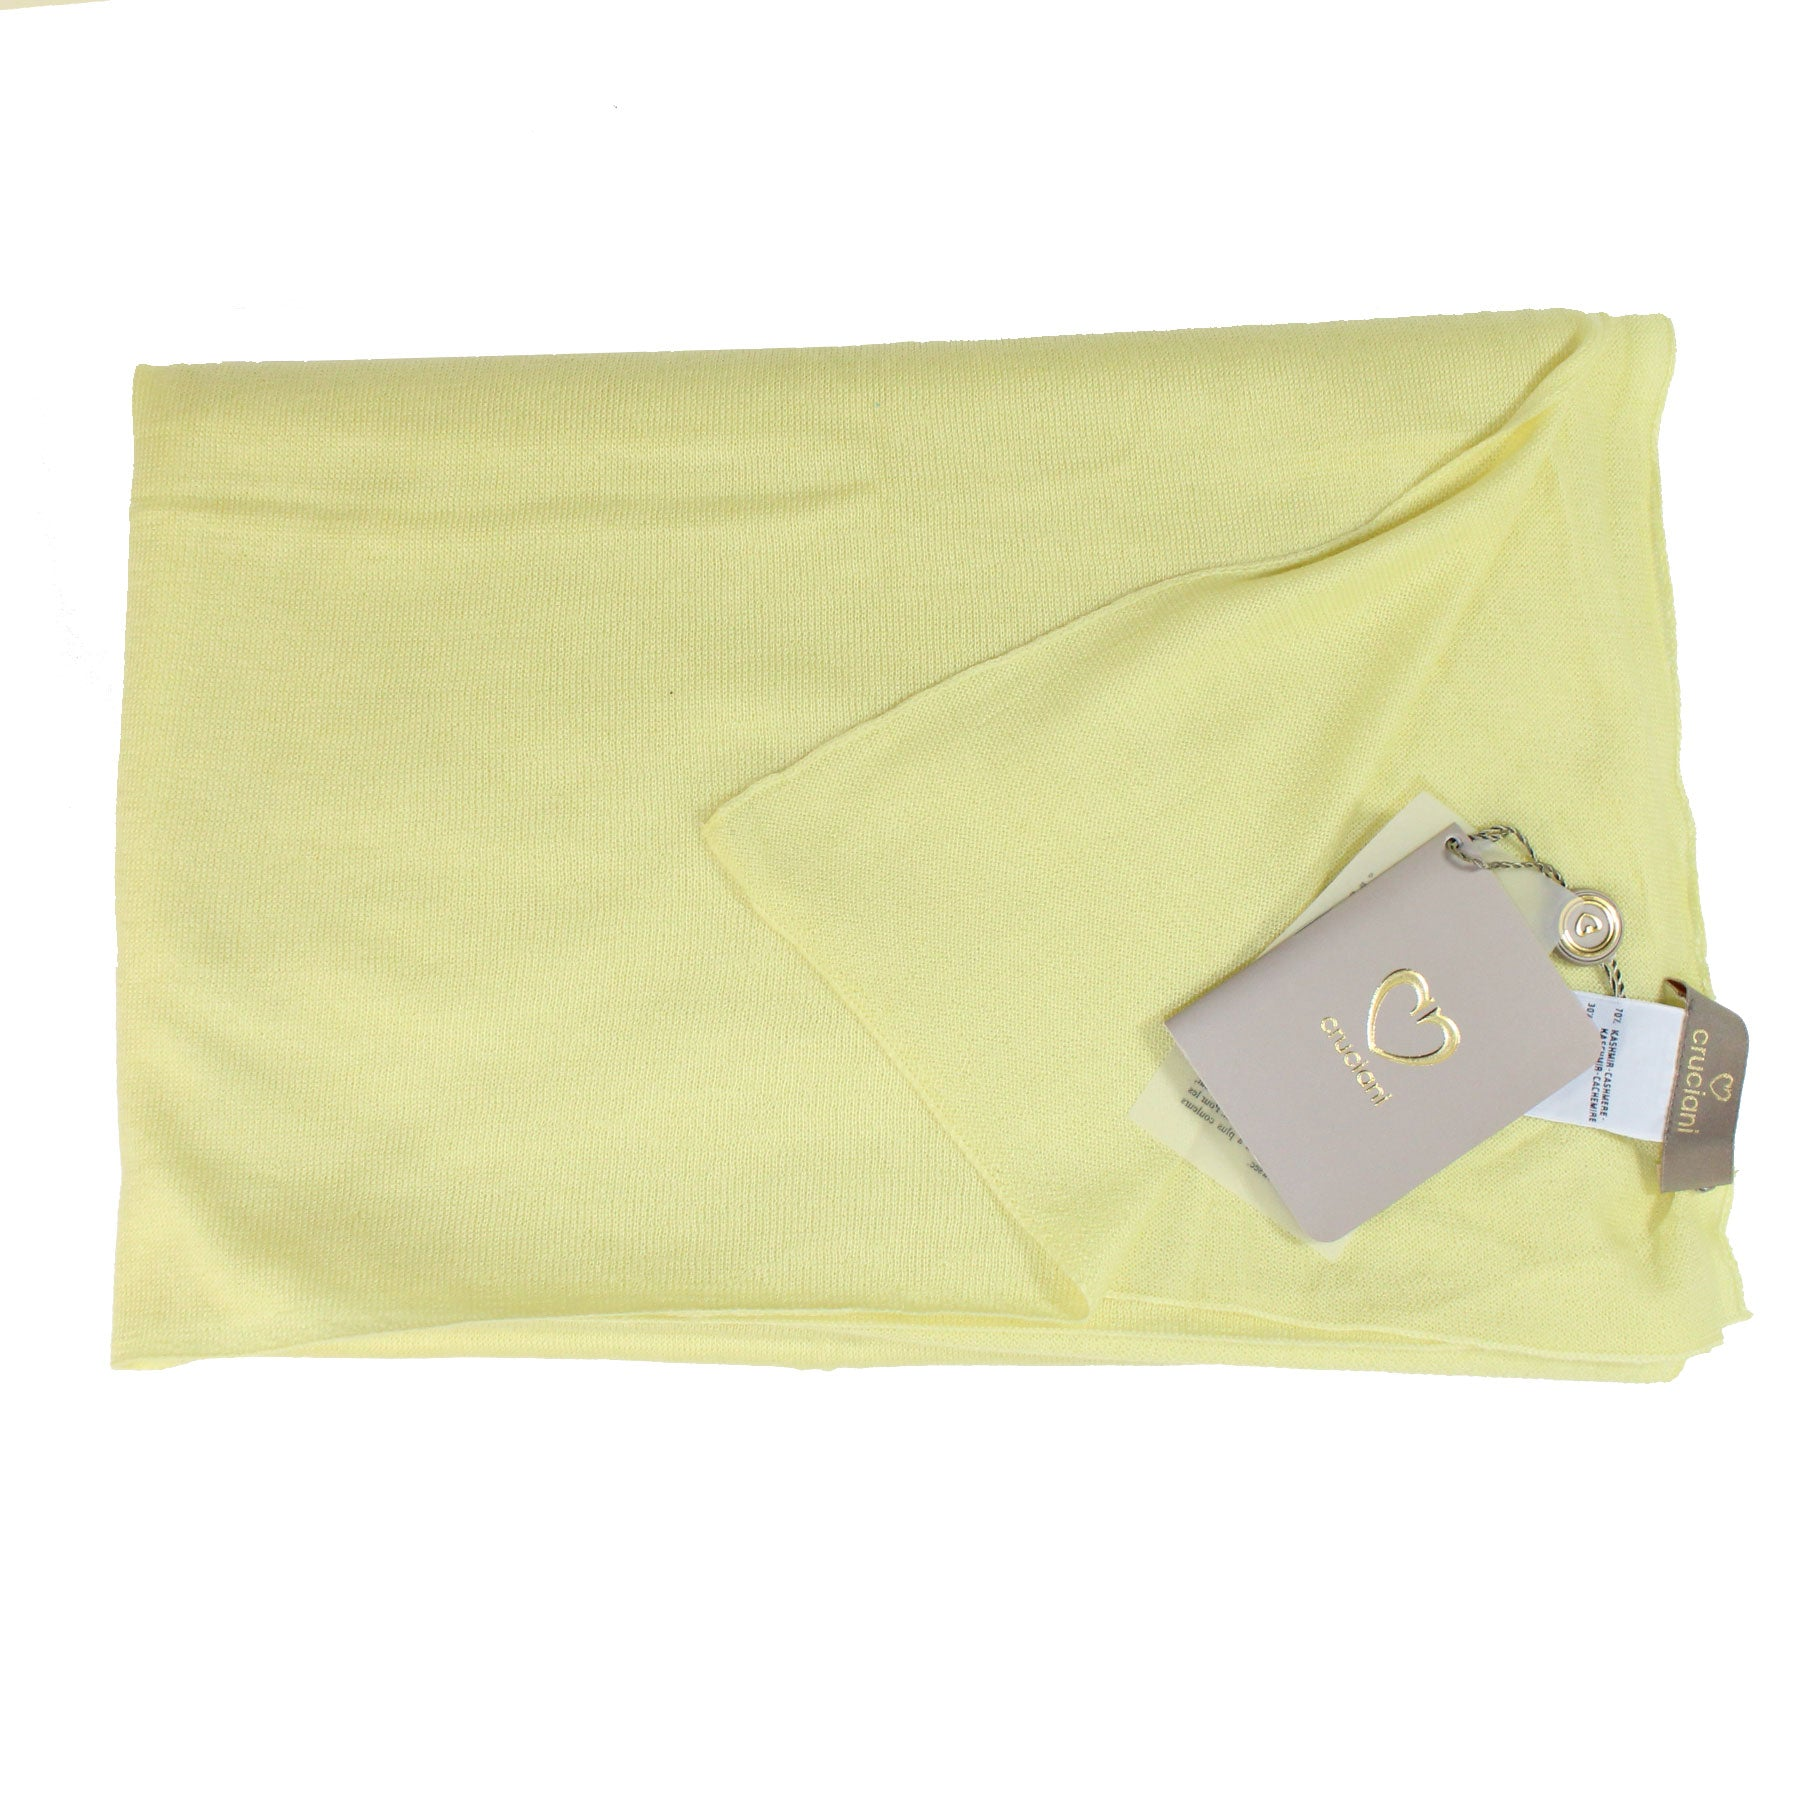 Cruciani Cashmere Silk Scarf Yellow New